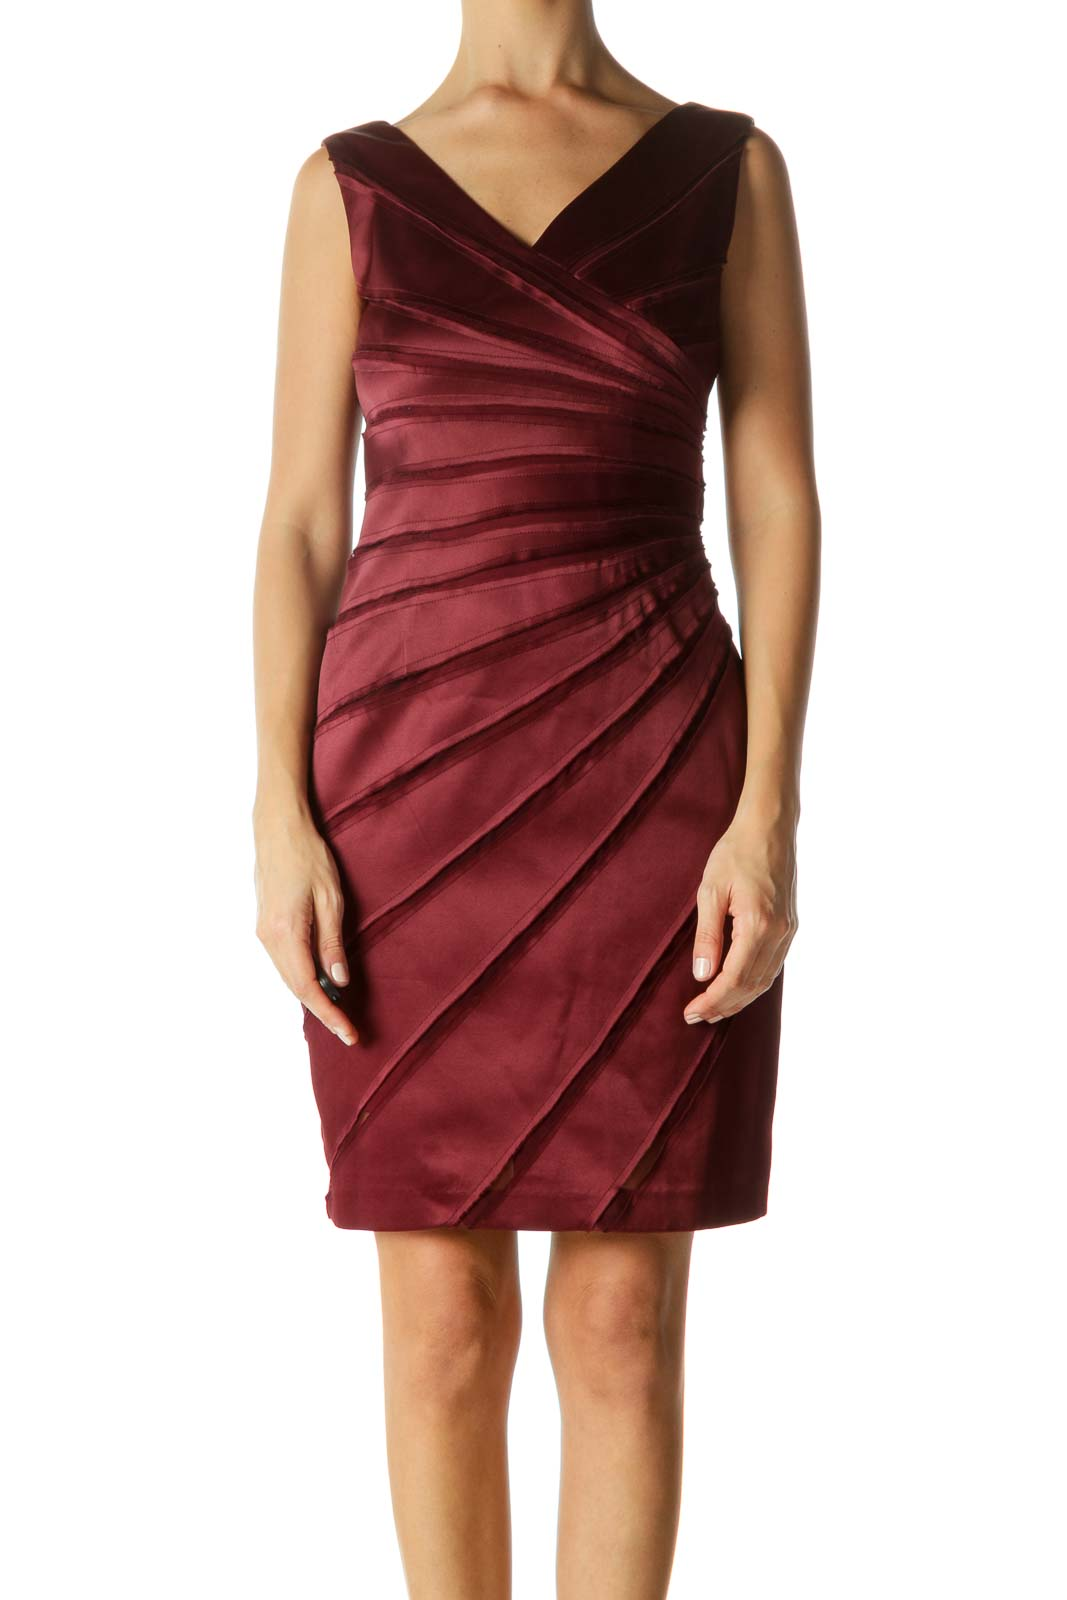 Burgundy Sheer & Seam Fitted Dress Front